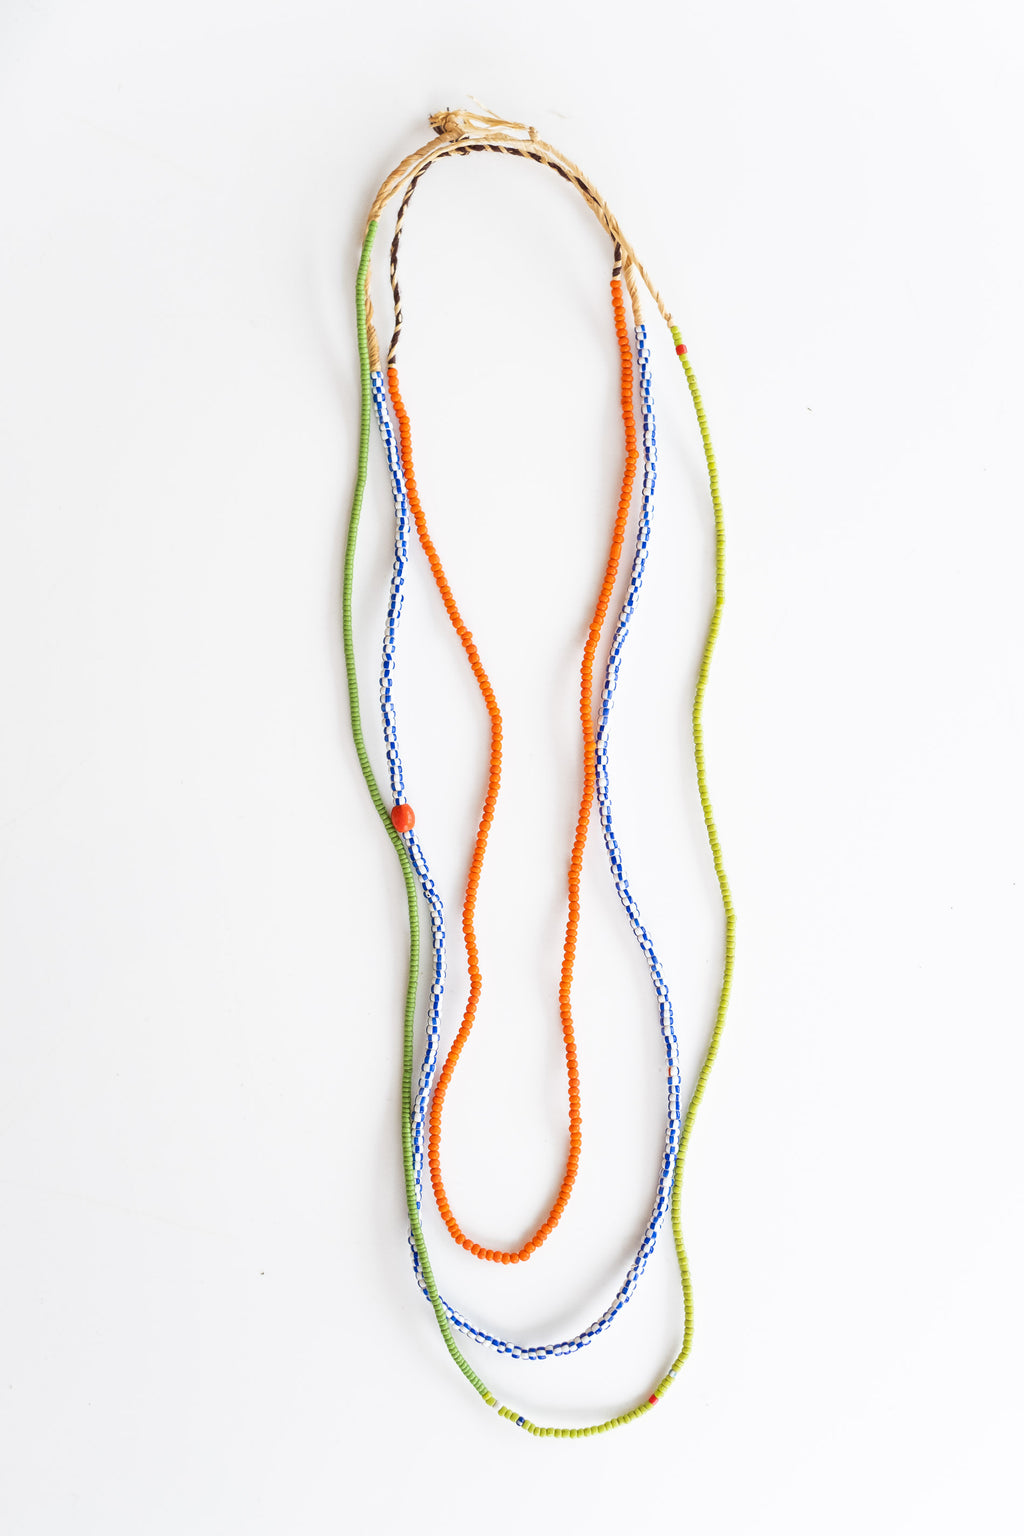 3-STRAND AFRICAN BEADS NO. 6